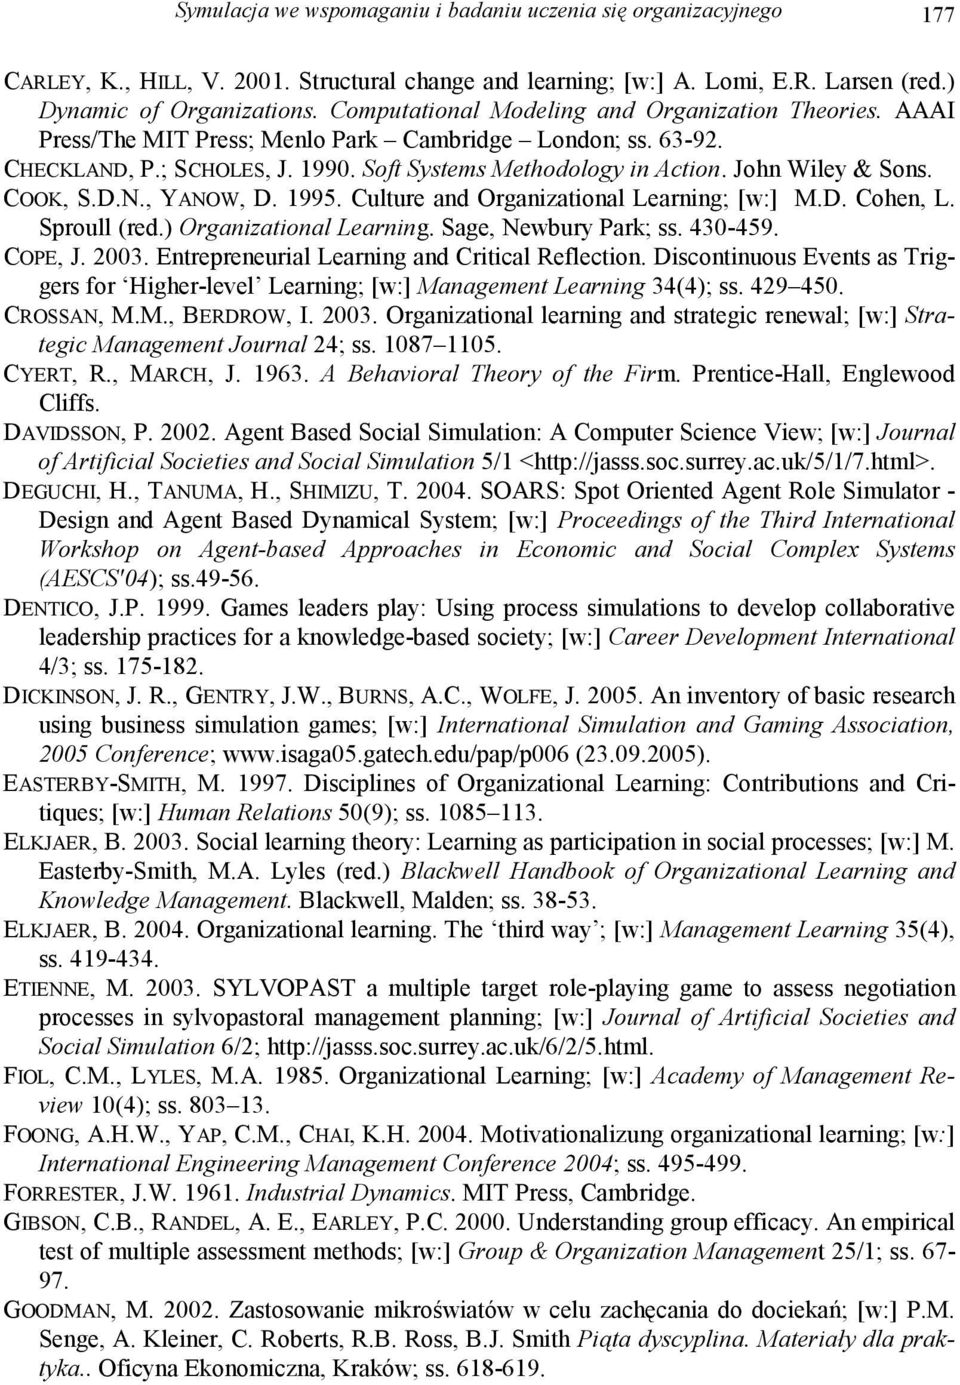 John Wiley & Sons. COOK, S.D.N., YANOW, D. 1995. Culture and Organizational Learning; [w:] M.D. Cohen, L. Sproull (red.) Organizational Learning. Sage, Newbury Park; ss. 430-459. COPE, J. 2003.